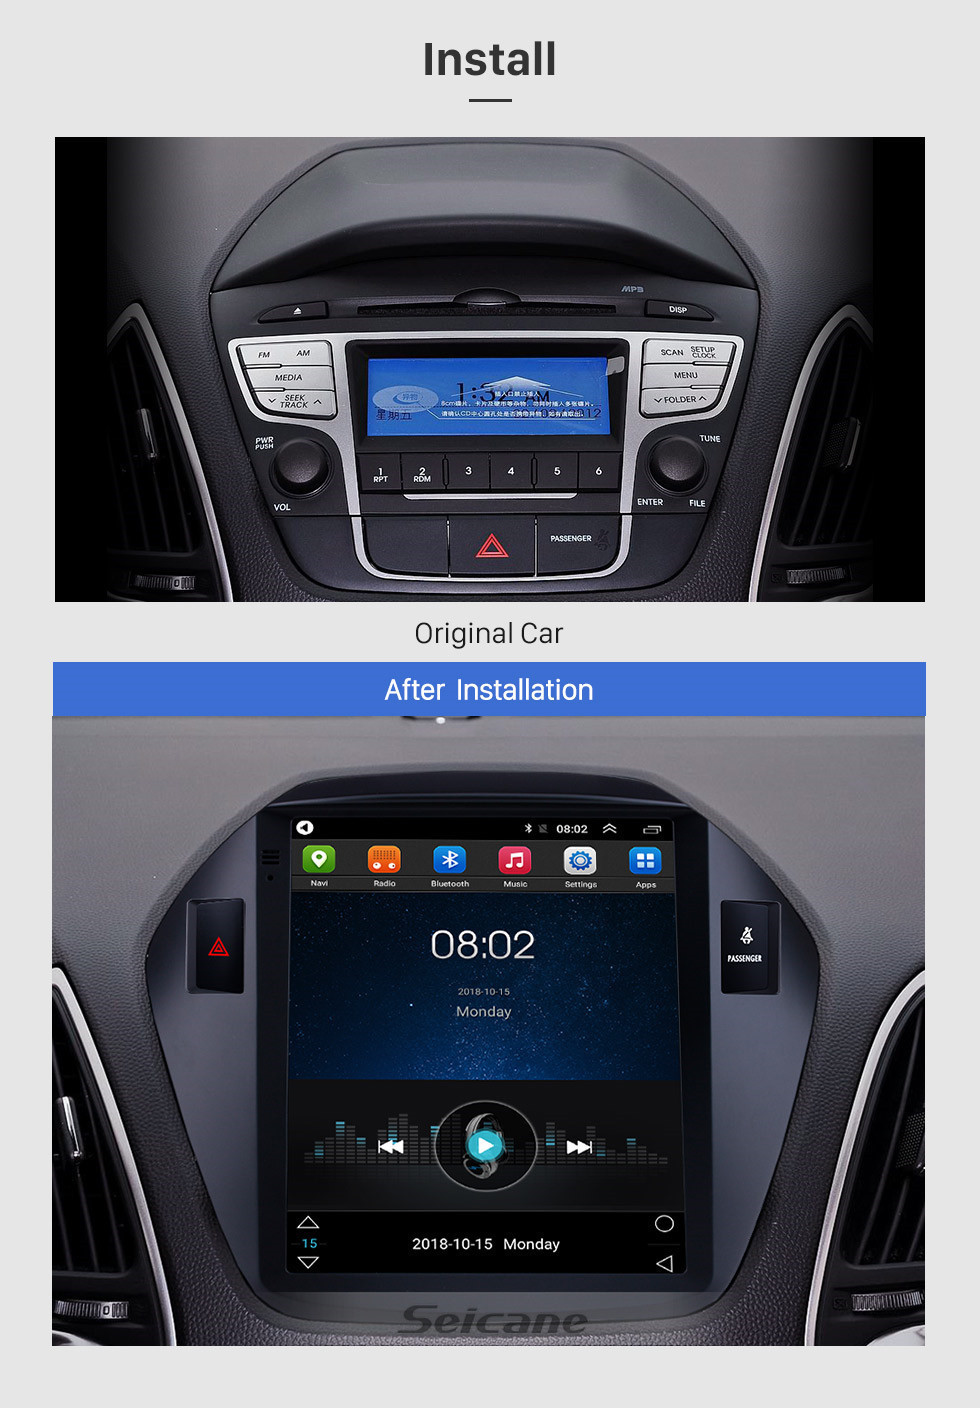 Seicane 2010 2011 2012 2013 2014 2015 Hyundai IX35 HD Touchscreen 9.7 inch Android 9.1 Car Stereo GPS Navigation Radio Bluetooth phone Music Wifi support DVR OBD2 Rearview Camera SWC DVD 4G